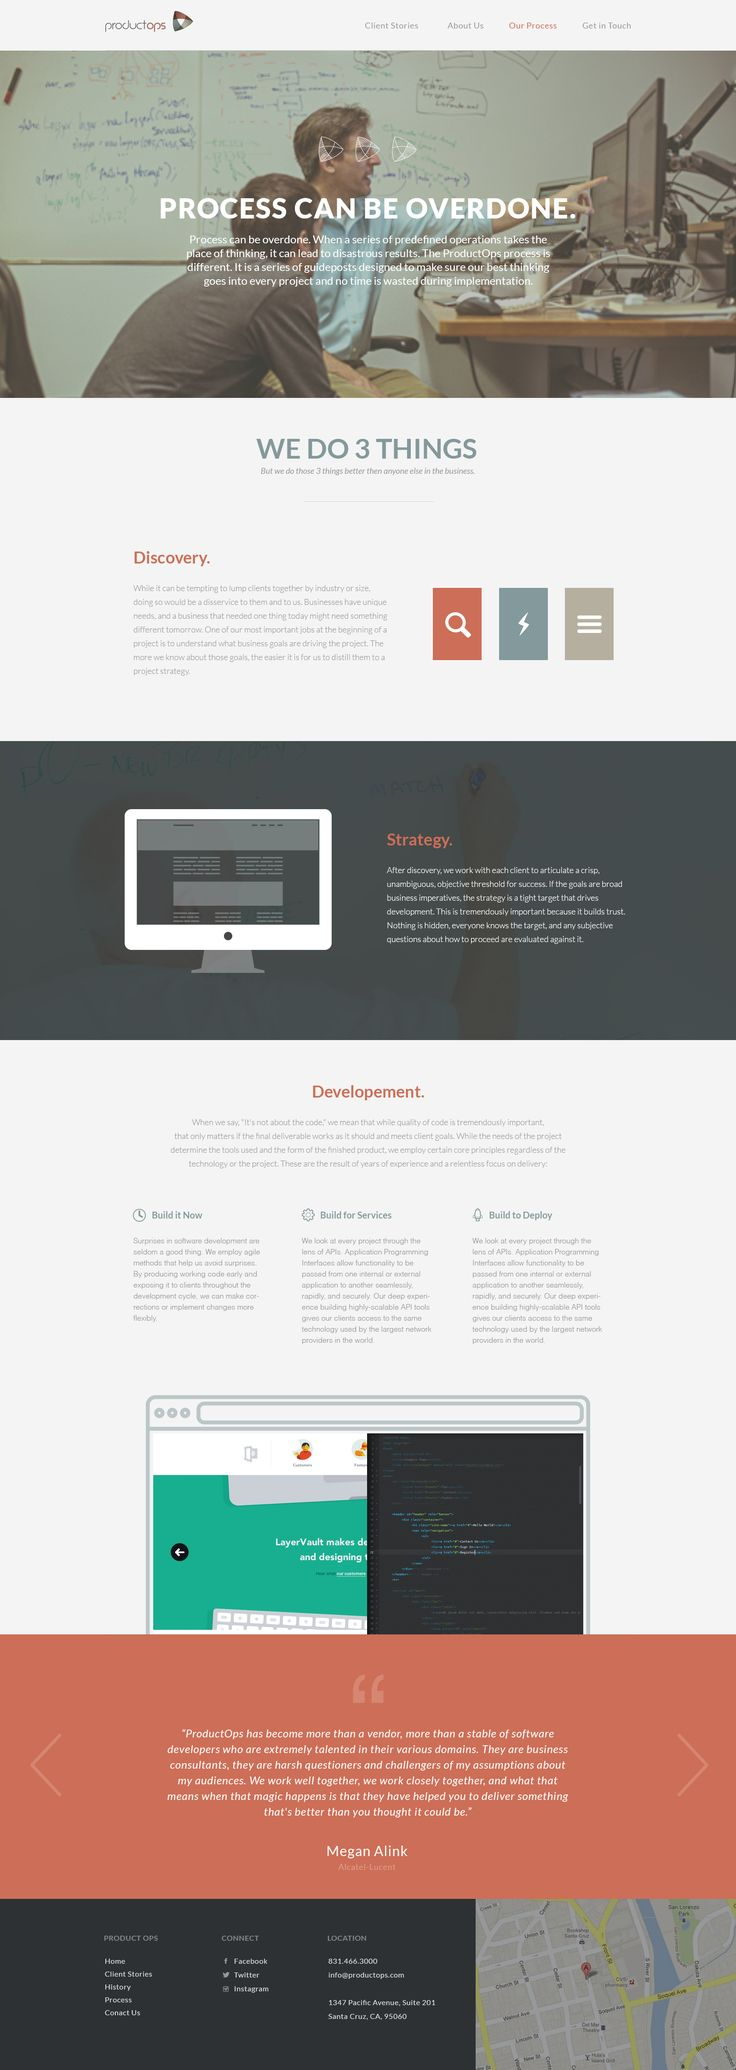 P-Ops Process Page